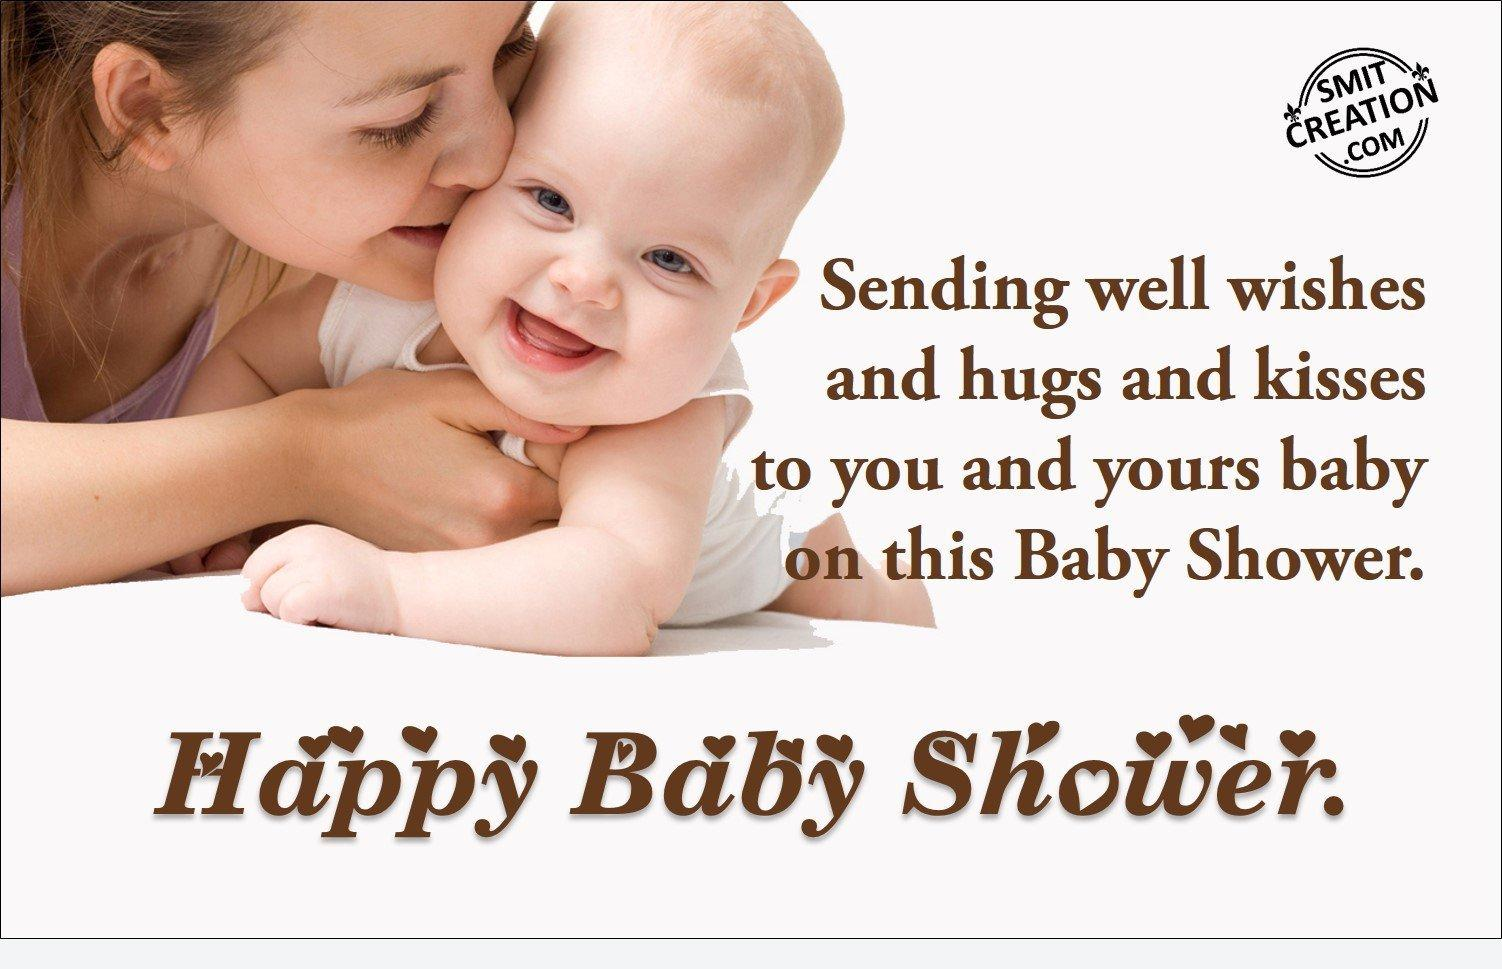 Baby Shower Pictures And Graphics Smitcreation Page 2